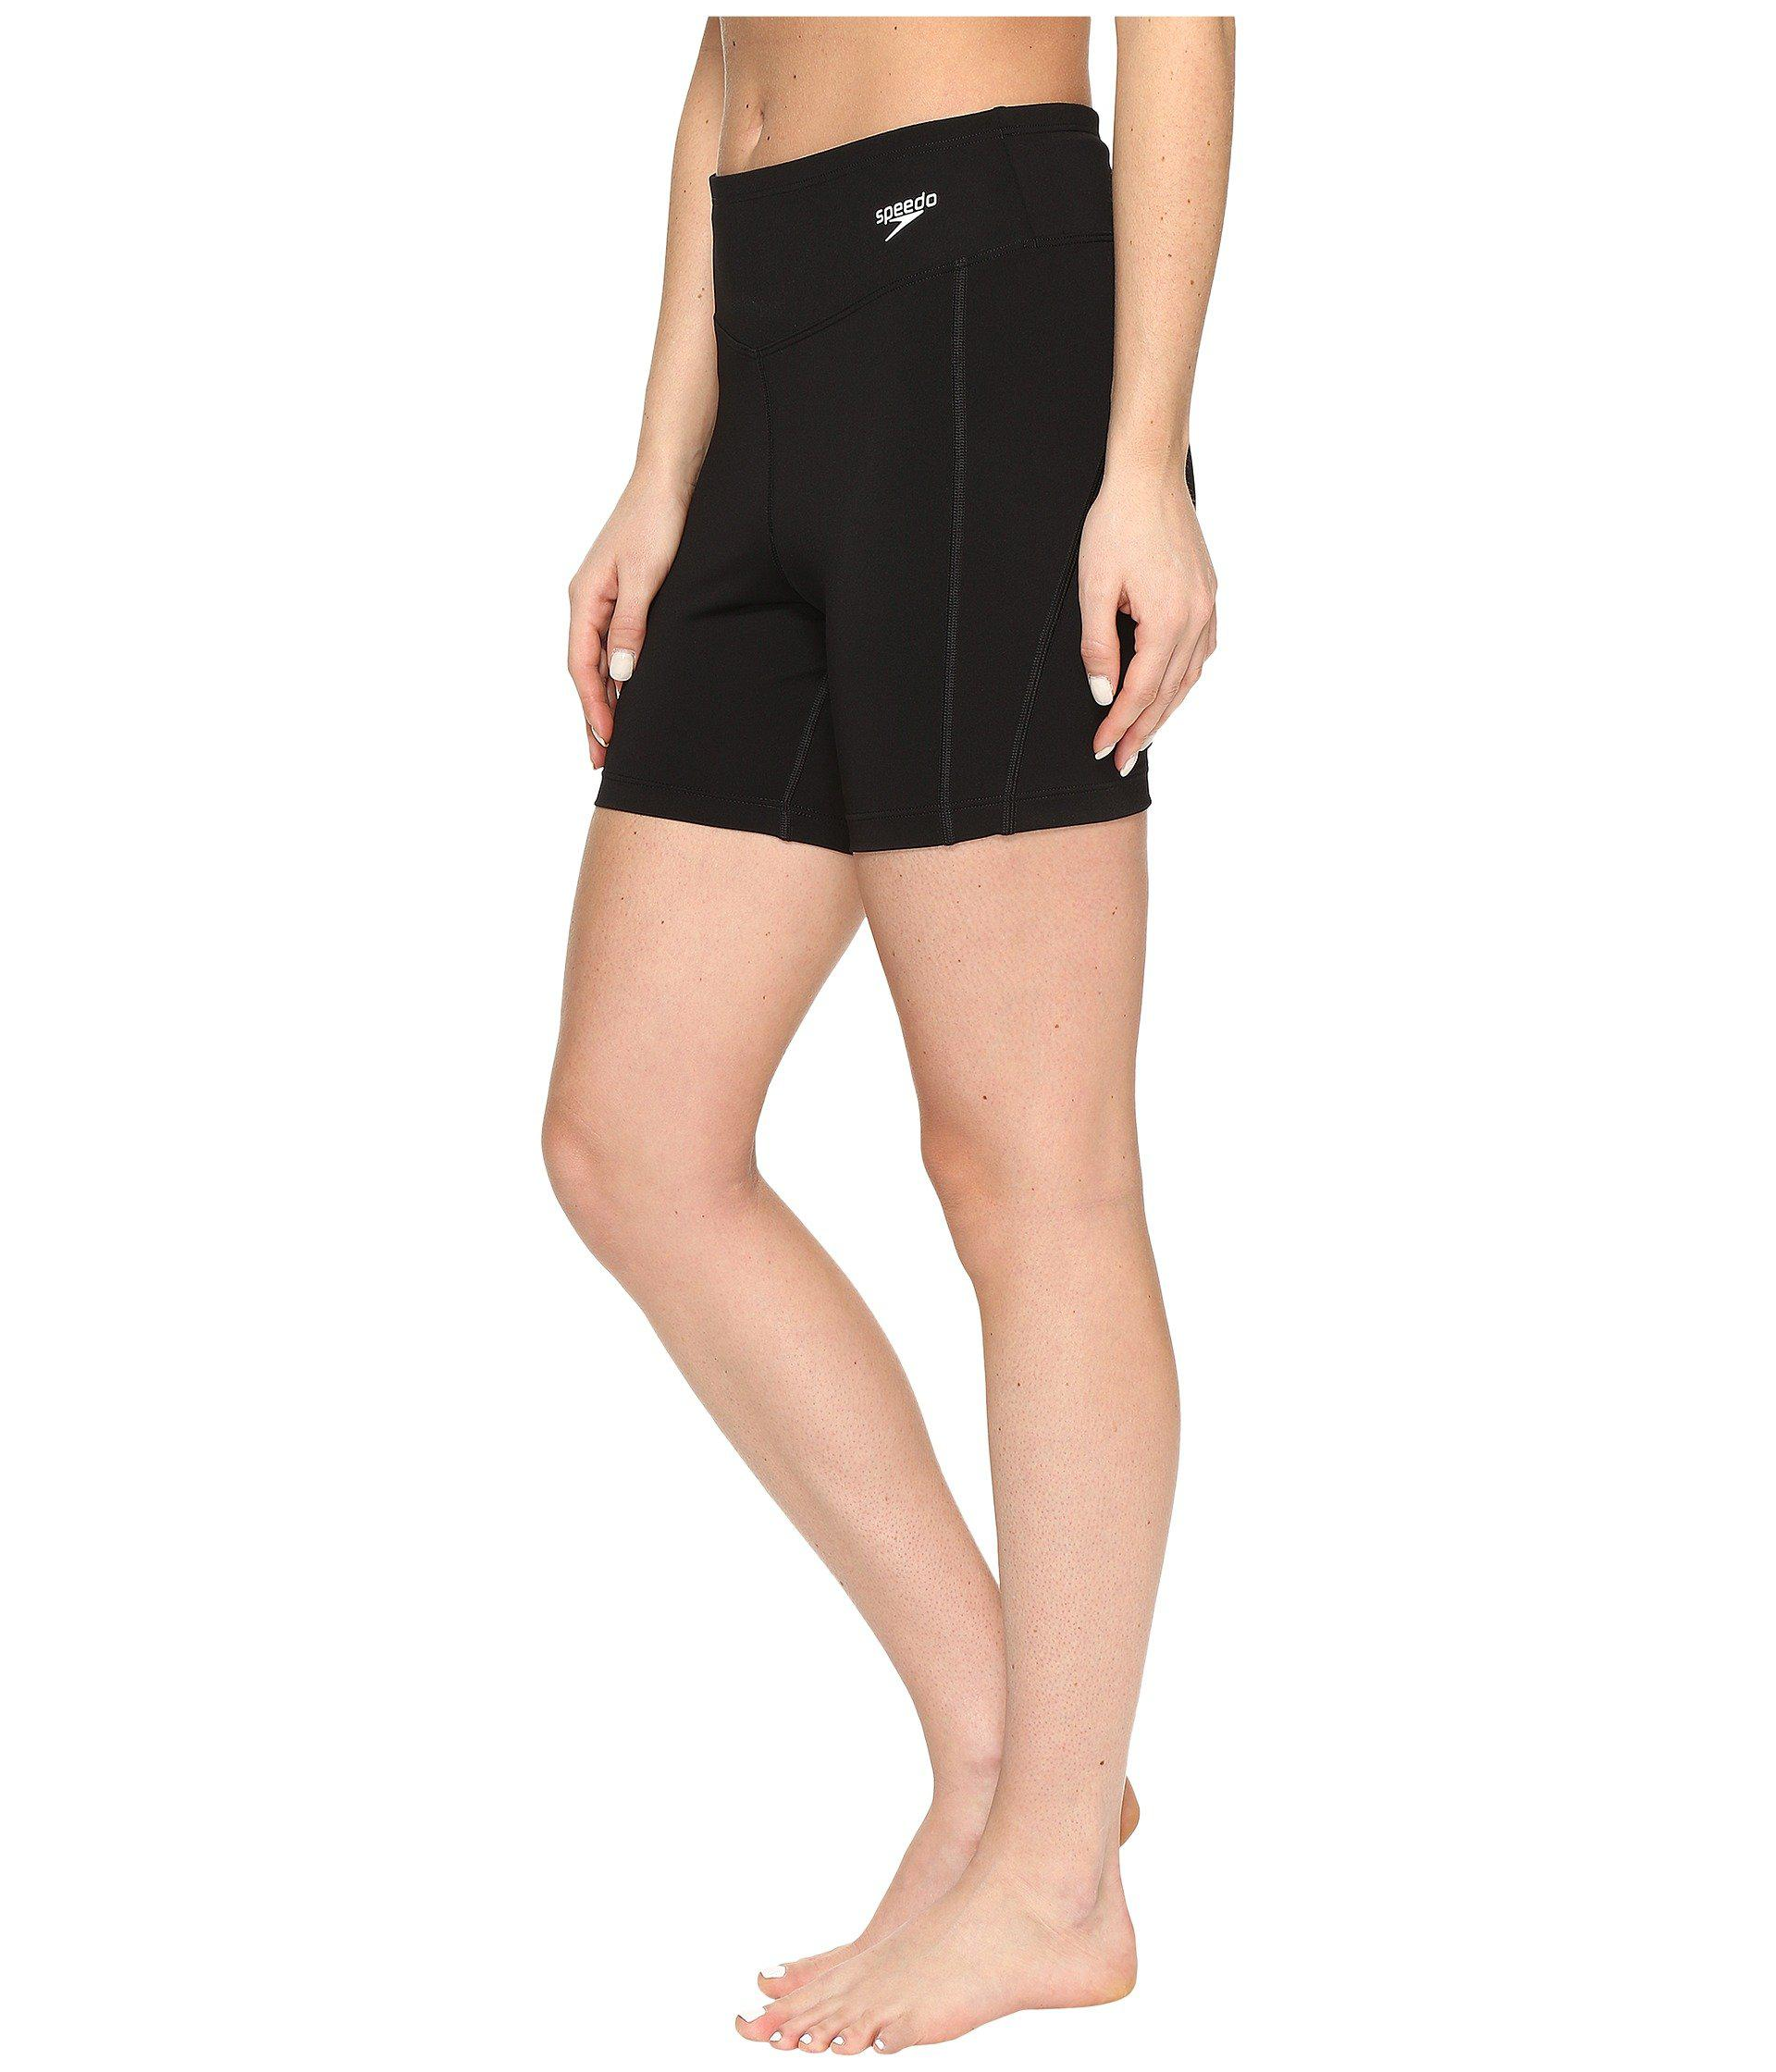 20108e6768 Speedo 5.5 Jammer ( Black) Women's Swimwear in Black - Lyst